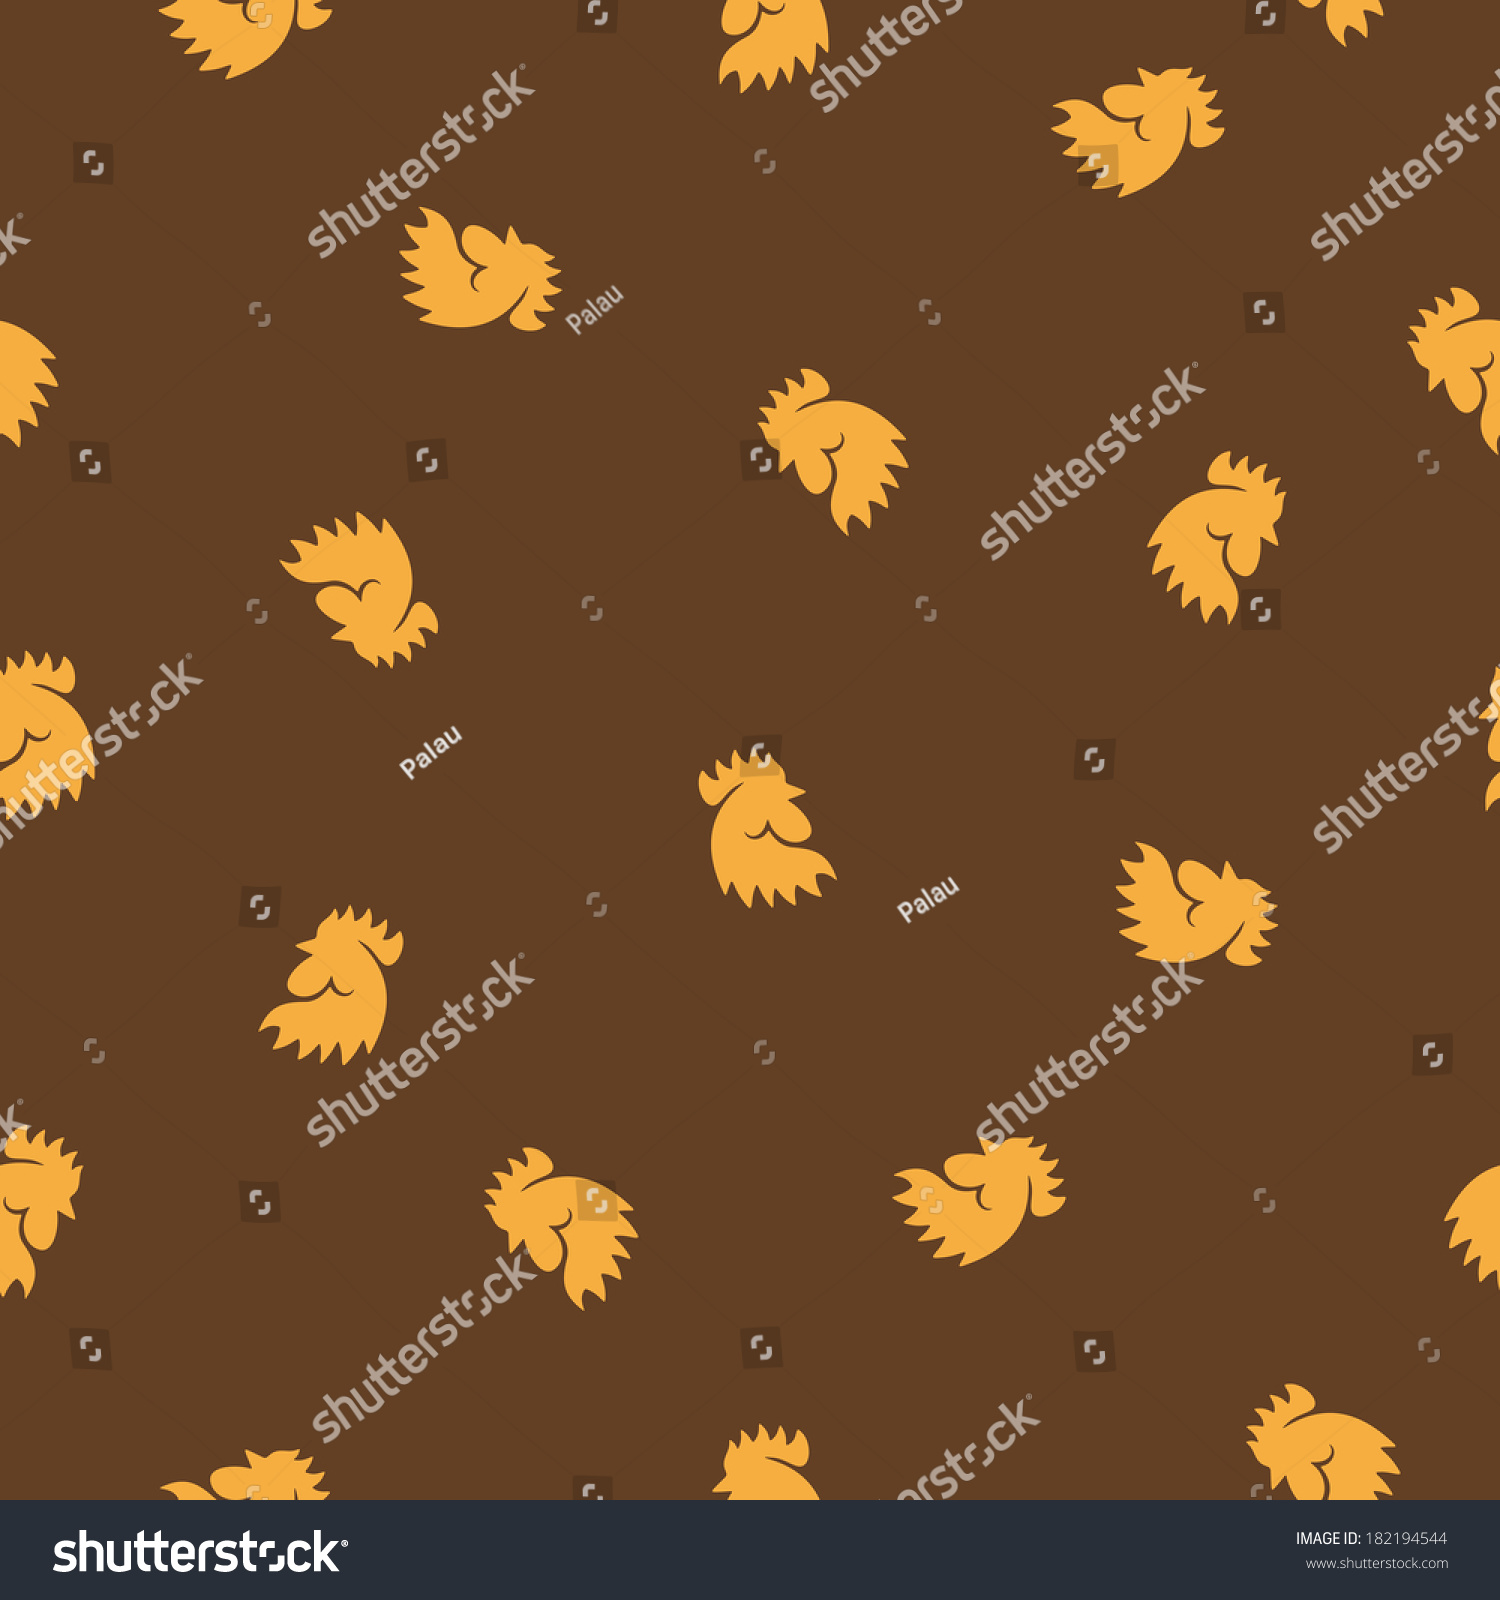 Seamless background cock vector illustration design stock vector 182194544 shutterstock - Cock designing ...